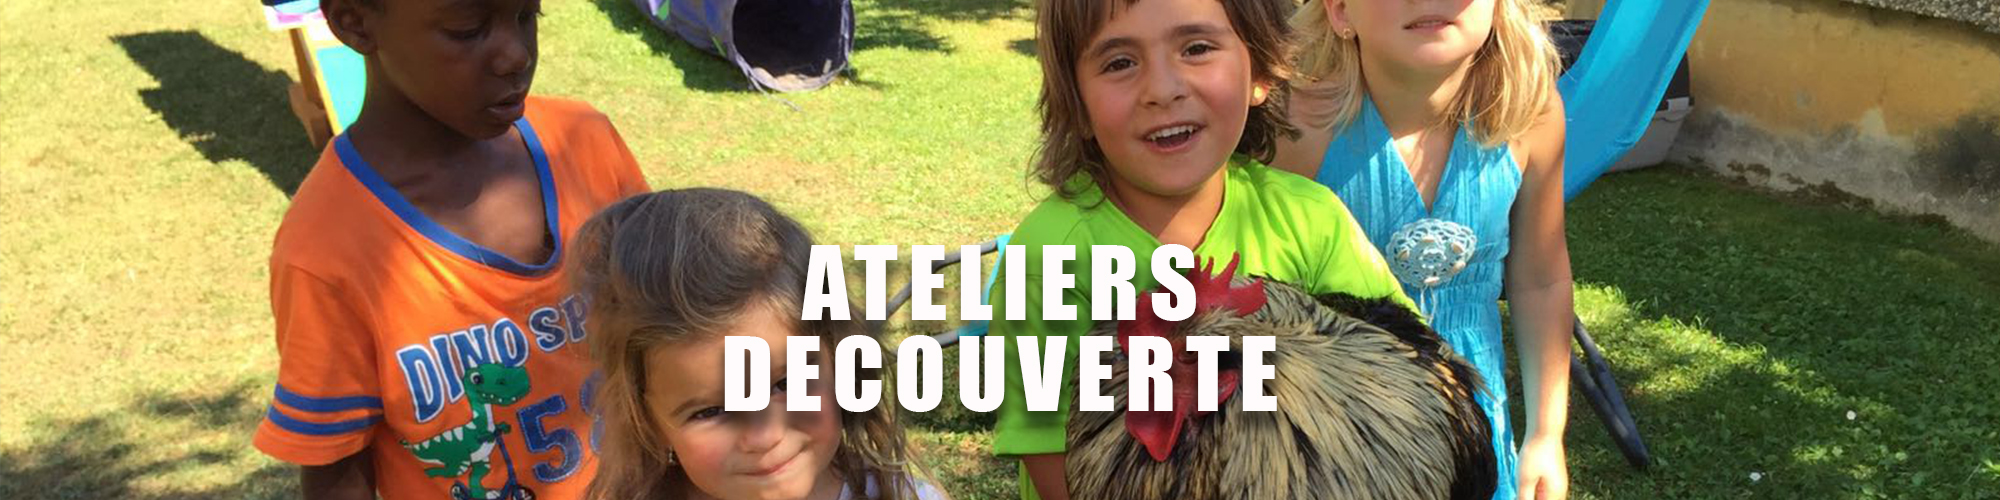 E modules ateliers decouverte